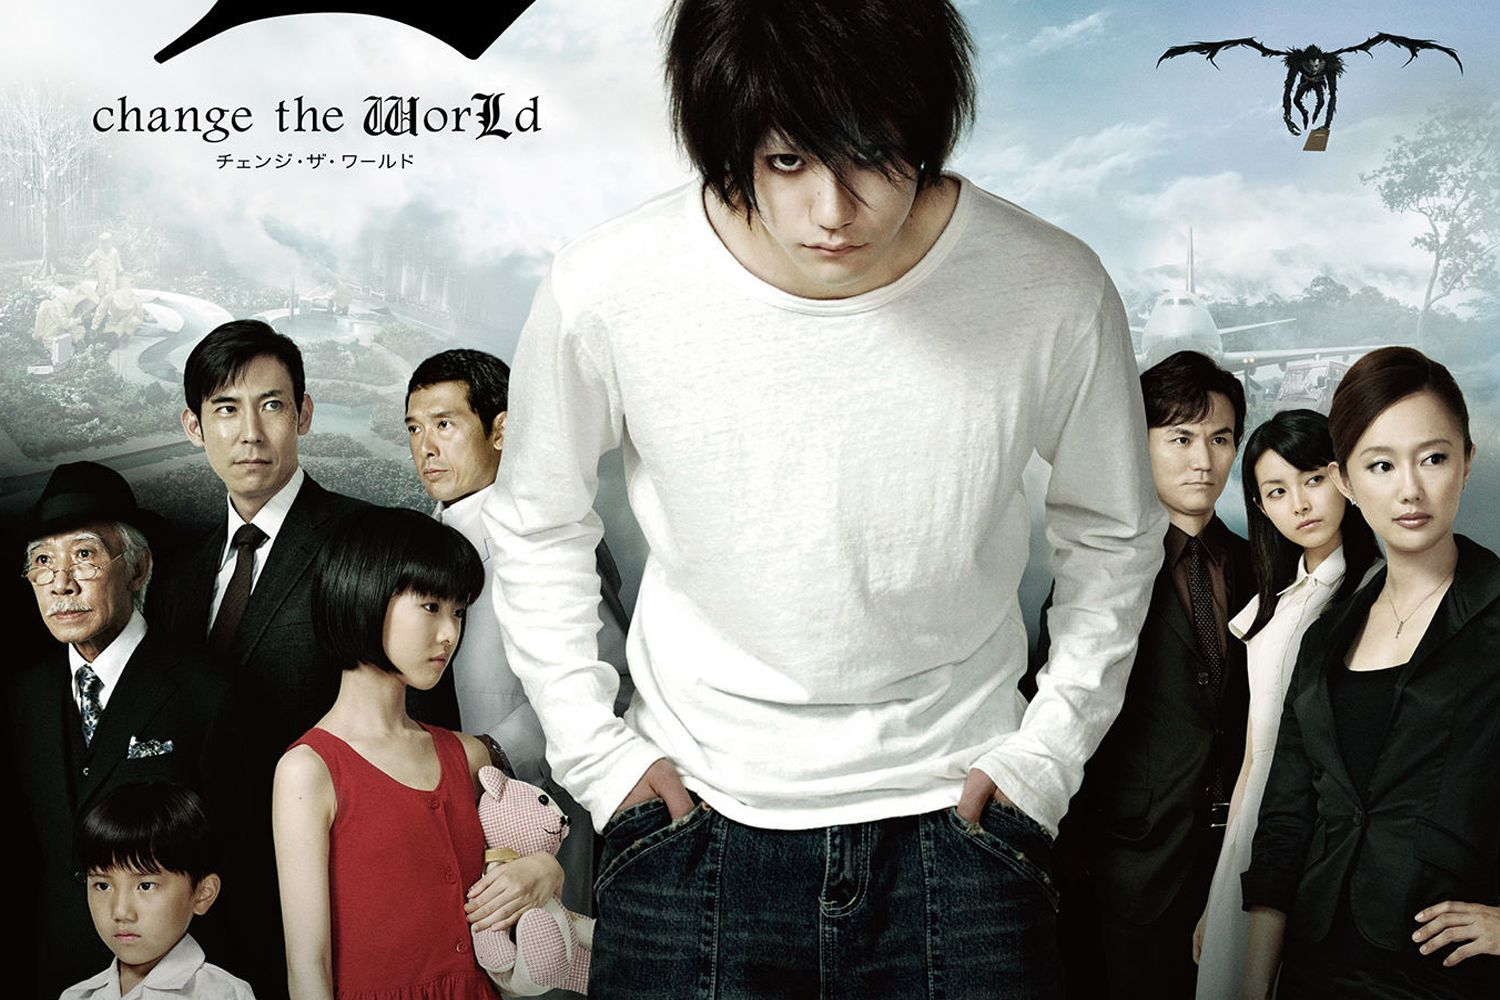 The Best Live Action Anime Films